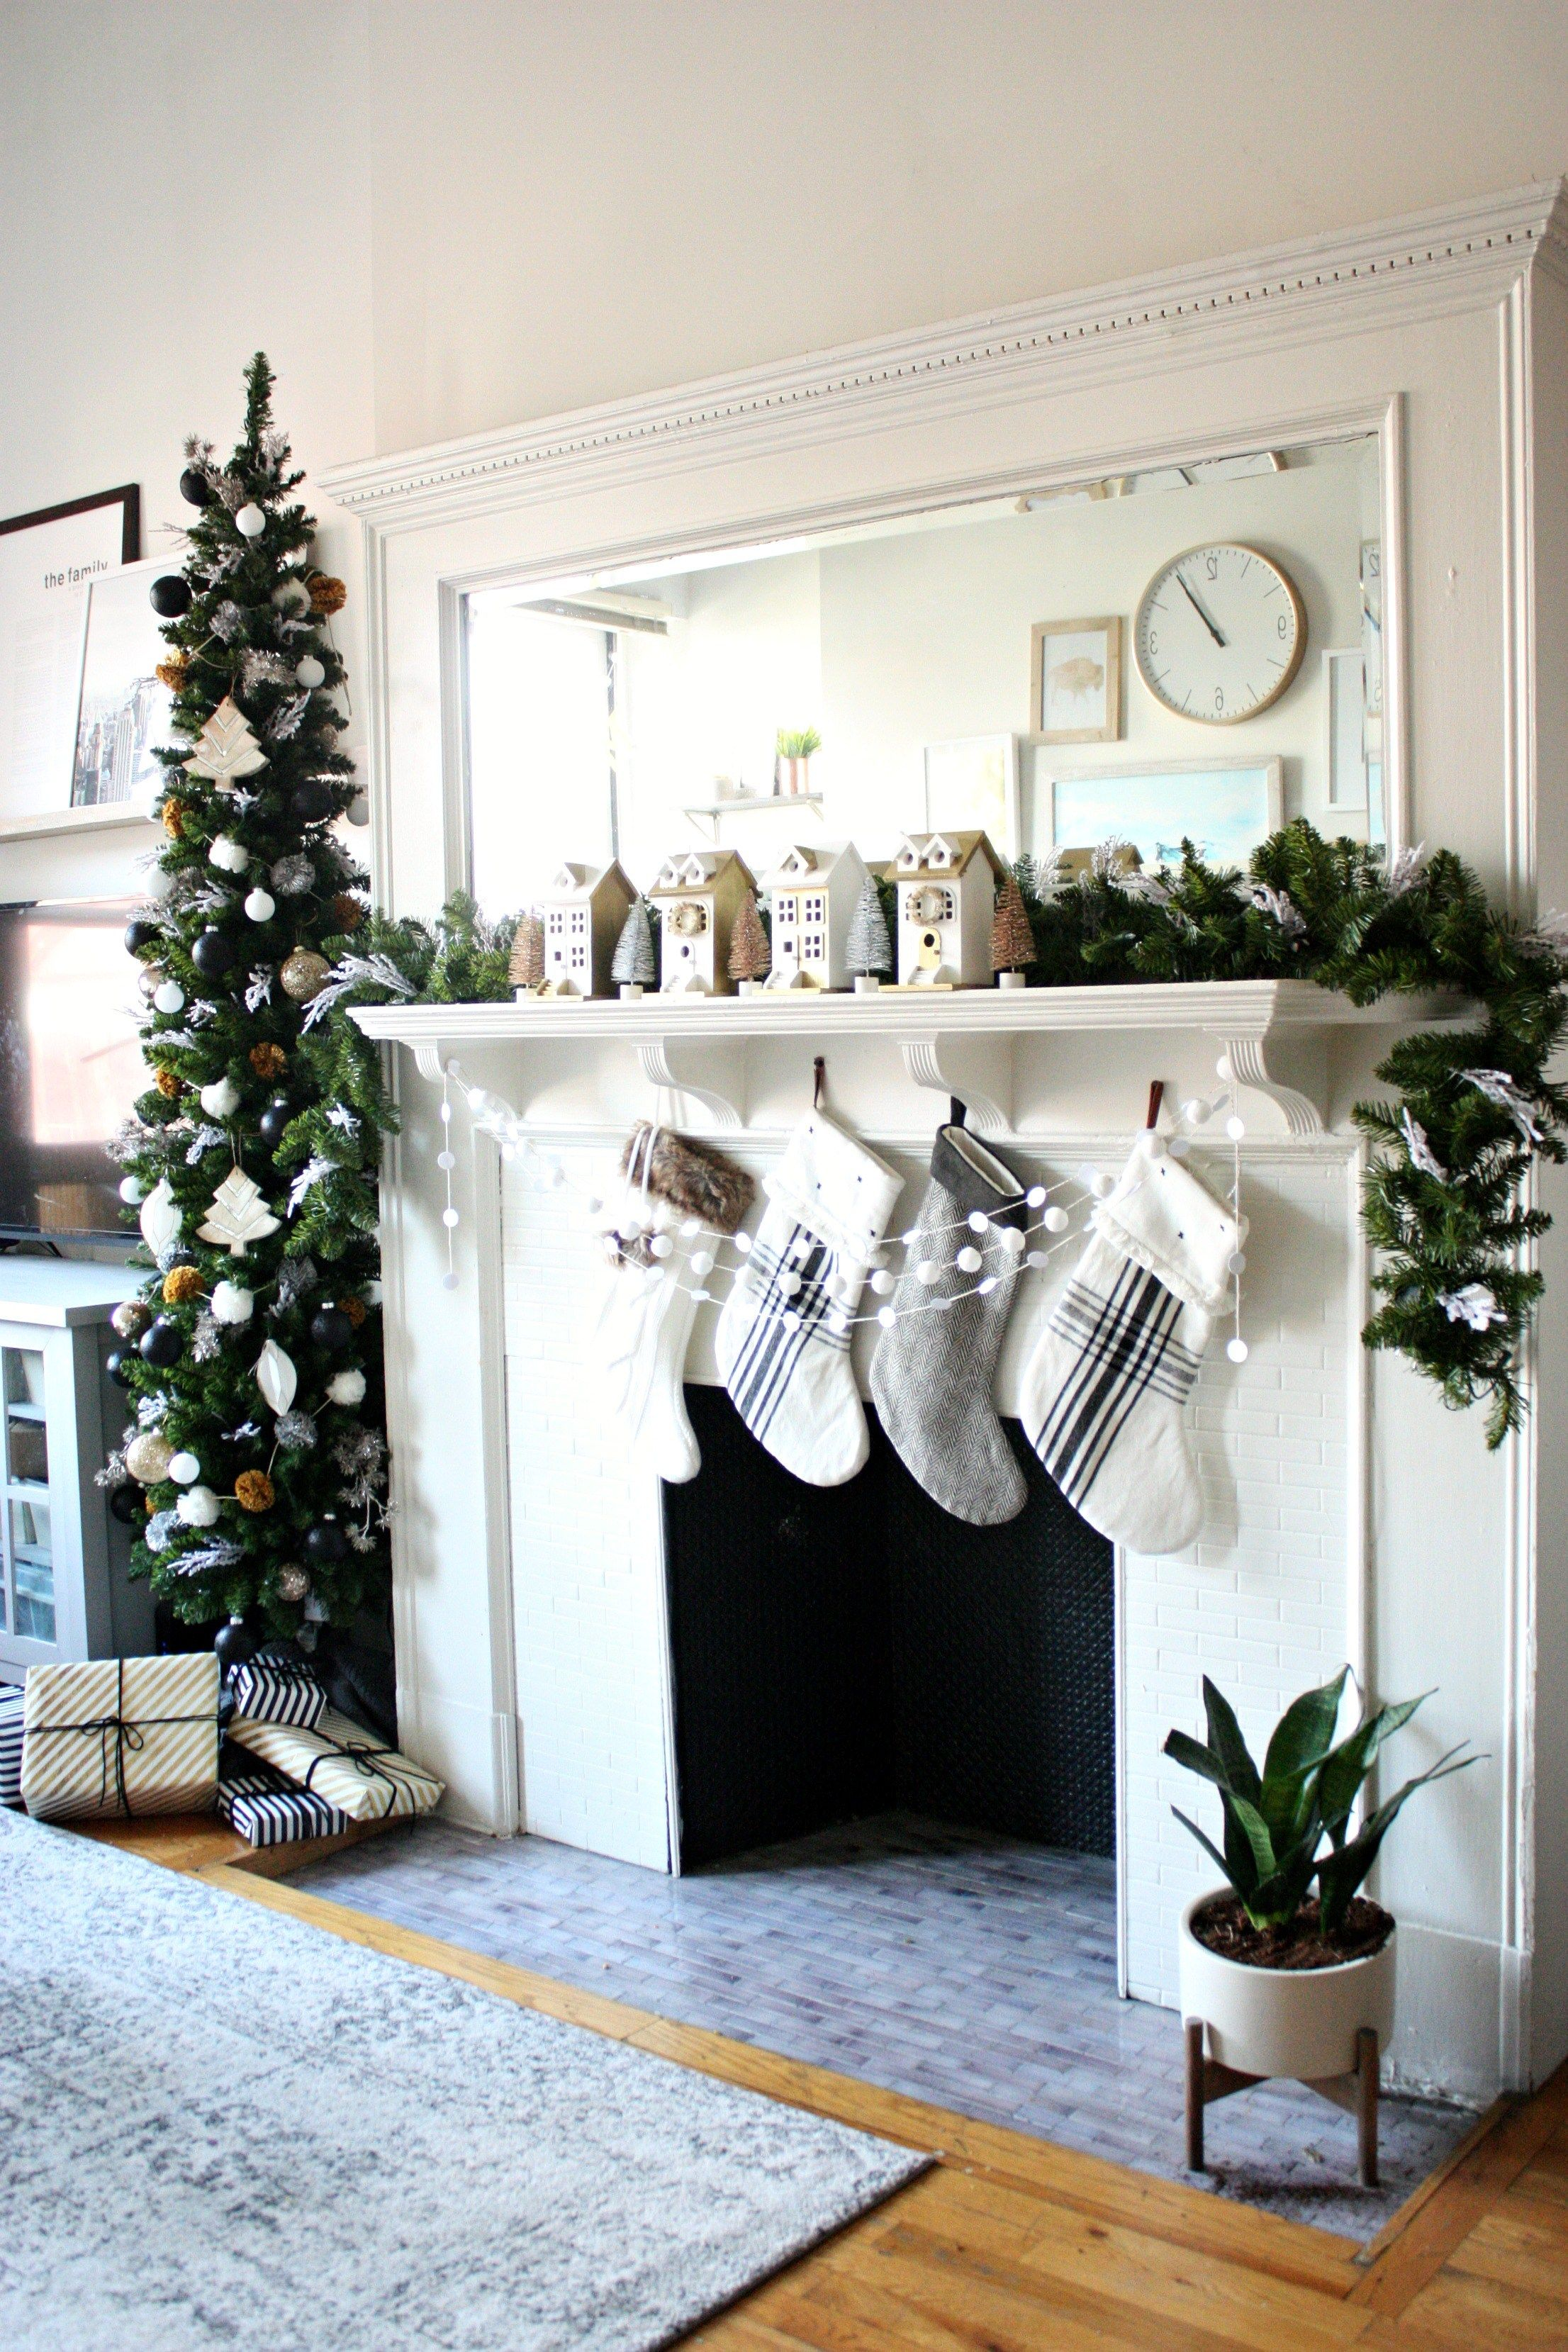 Holiday Decorating in the city with Treetopia! | The Pretty Life ...